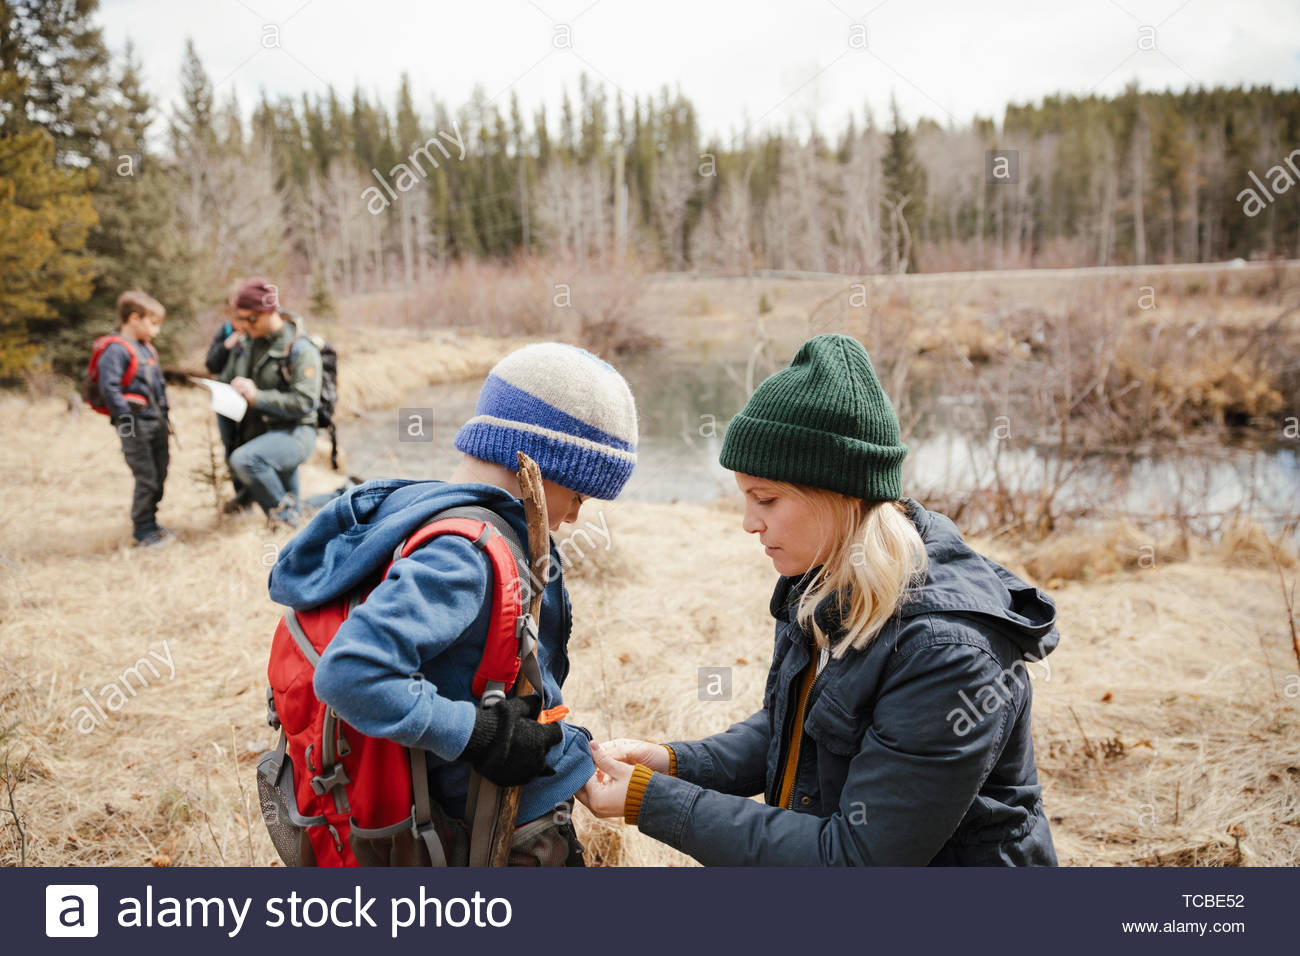 Family hiking in woods - Stock Image